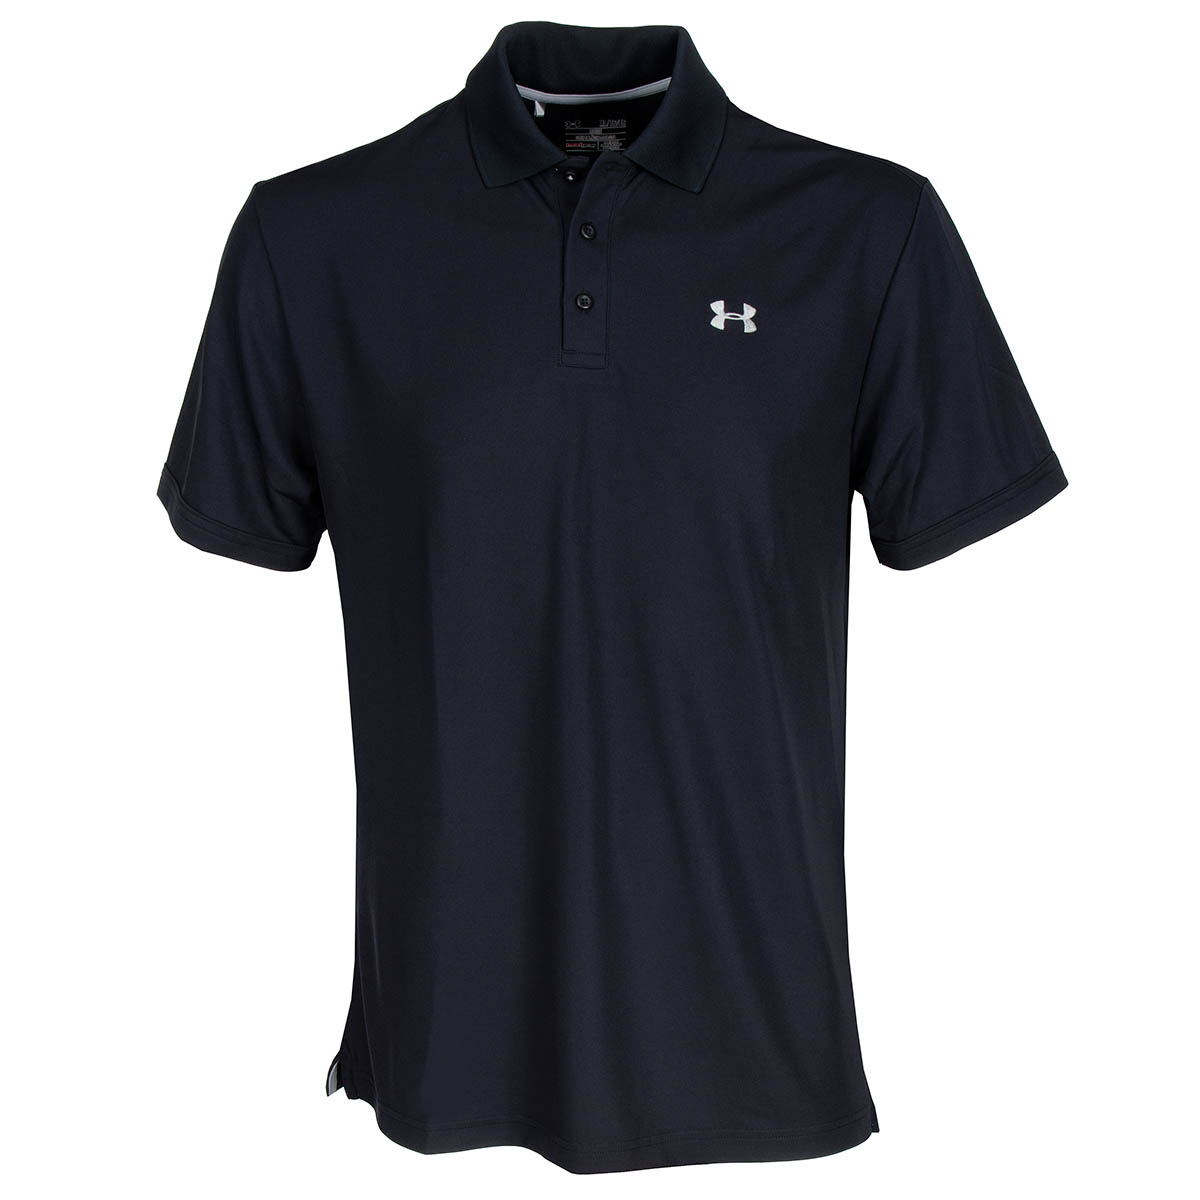 Under armour performance polo shirt black steel for Under armor polo shirts